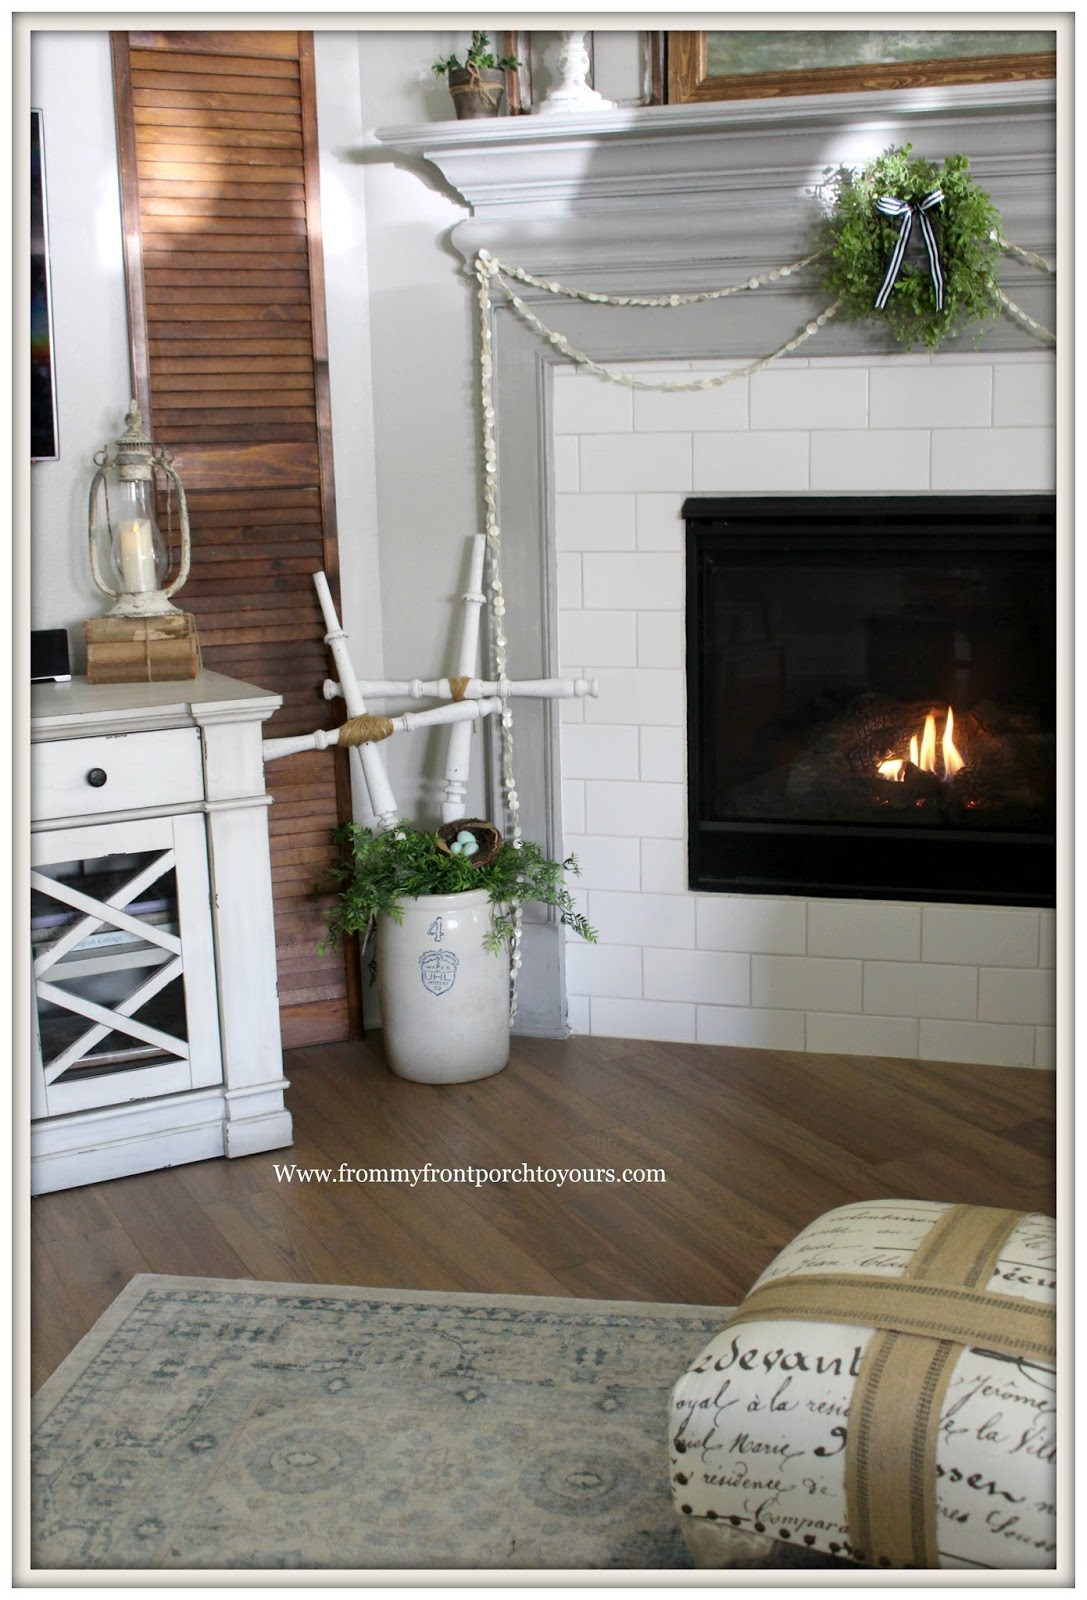 French Country Fireplace From My Front Porch To Yours French Country Farmhouse Fireplace